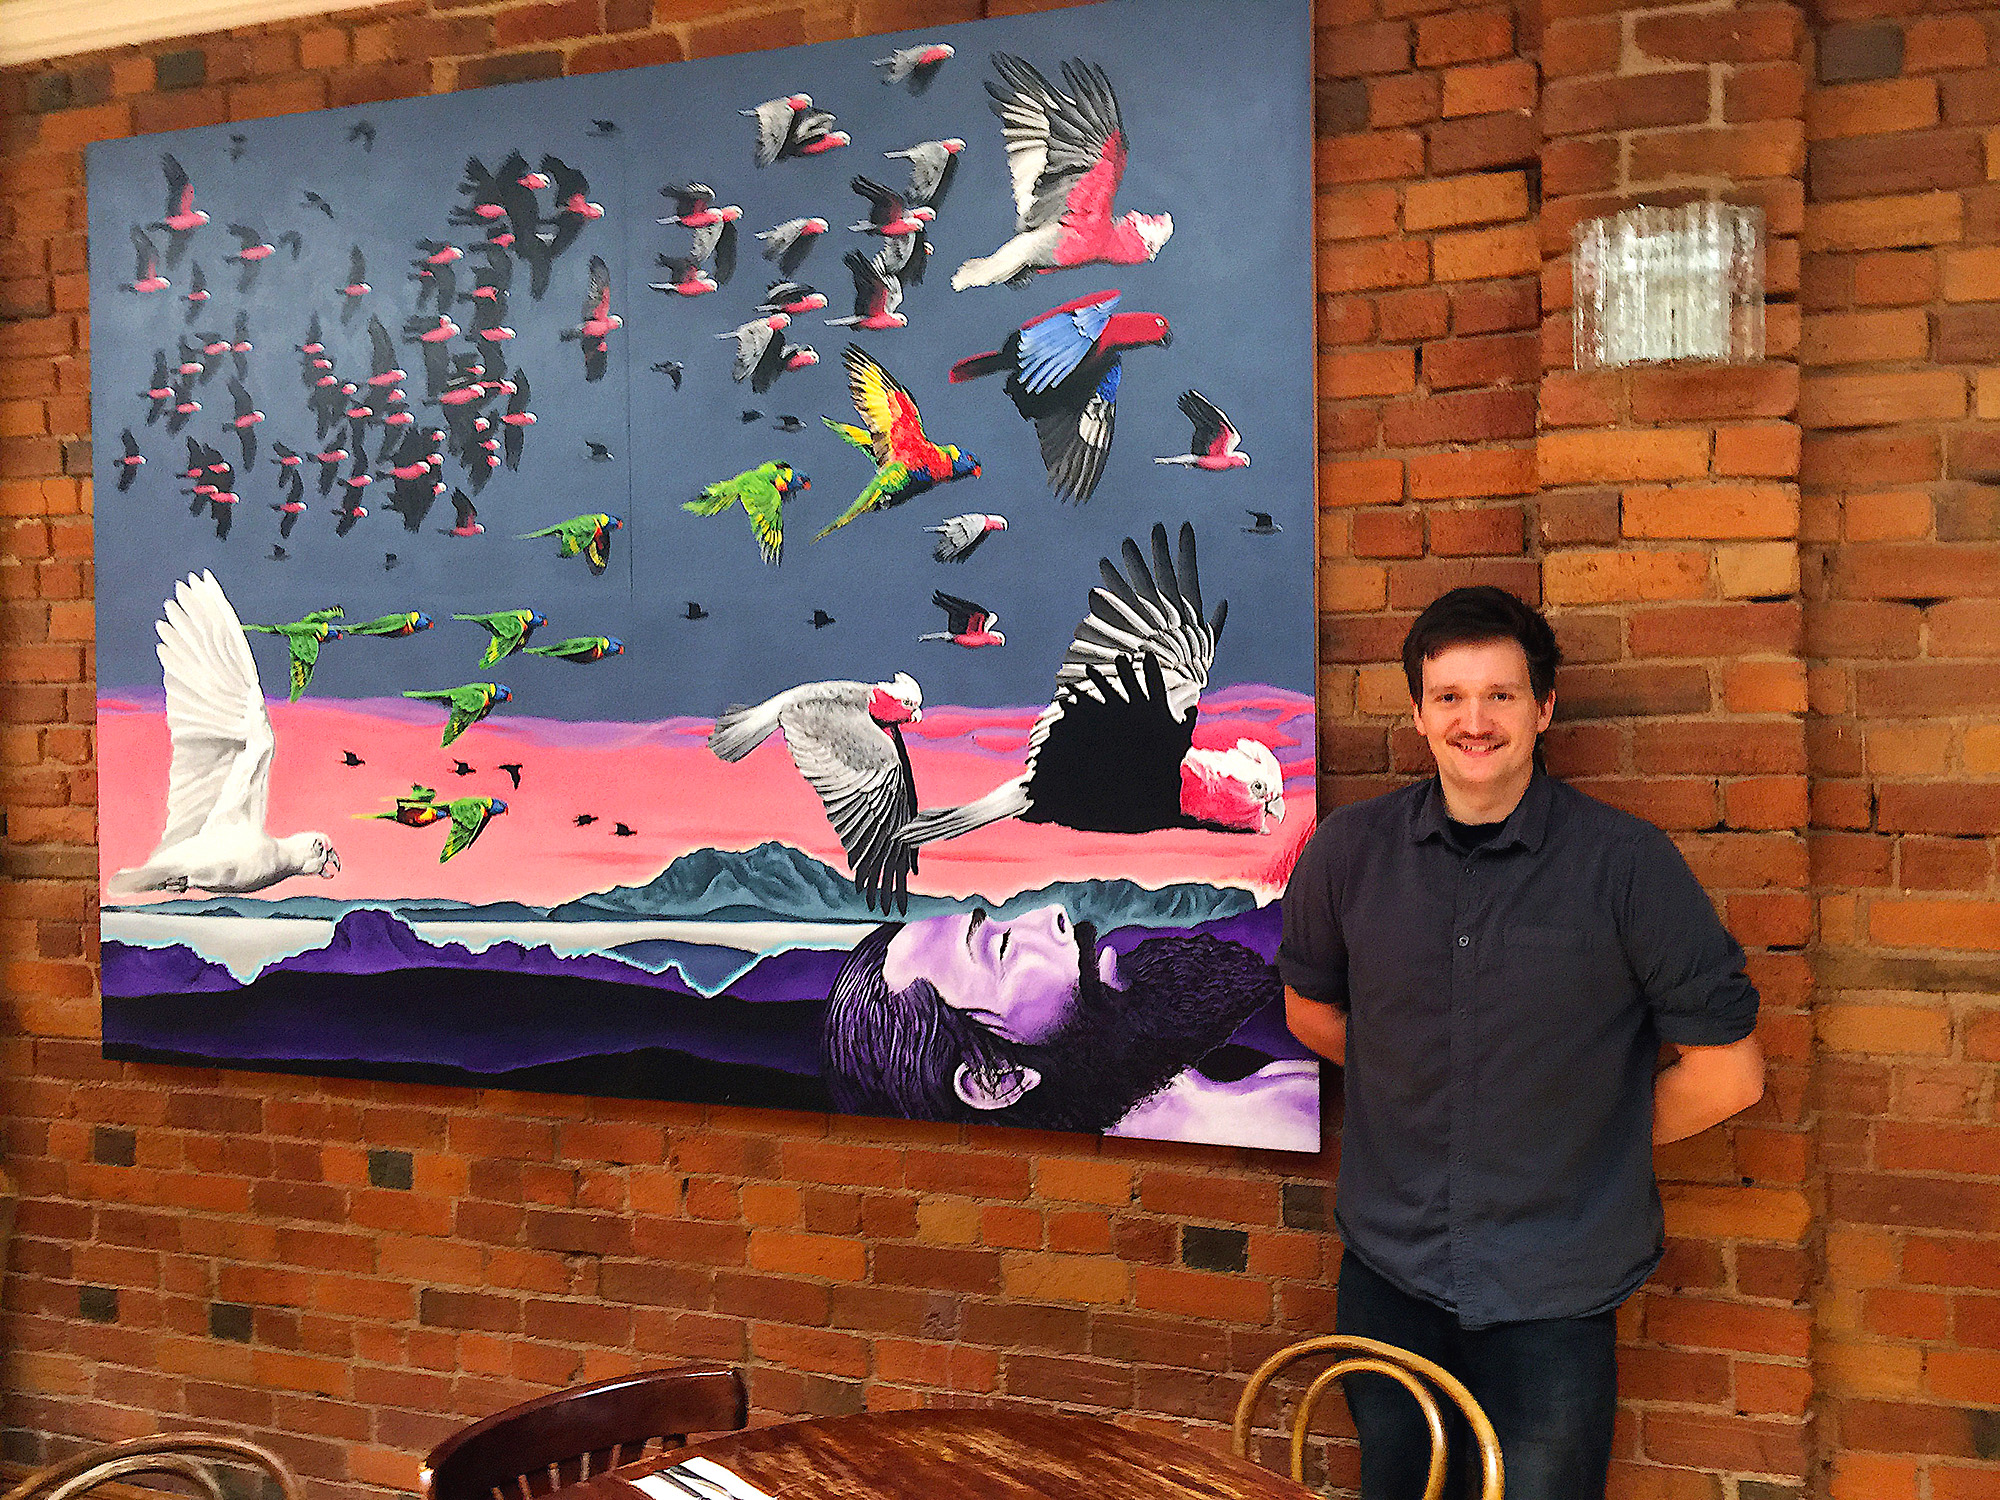 This is Felix. Apart from conducting service of the Red Hill Hotel like Darren Barreboim, he's also a lovely bloke… We managed to unwrap, re-assemble and mount this hefty pic by ten past twelve, with a full compliment descending on the pub for lunch. Felix watered the arrivals downstairs.  Didn't flinch. Didn't blink. Legend.